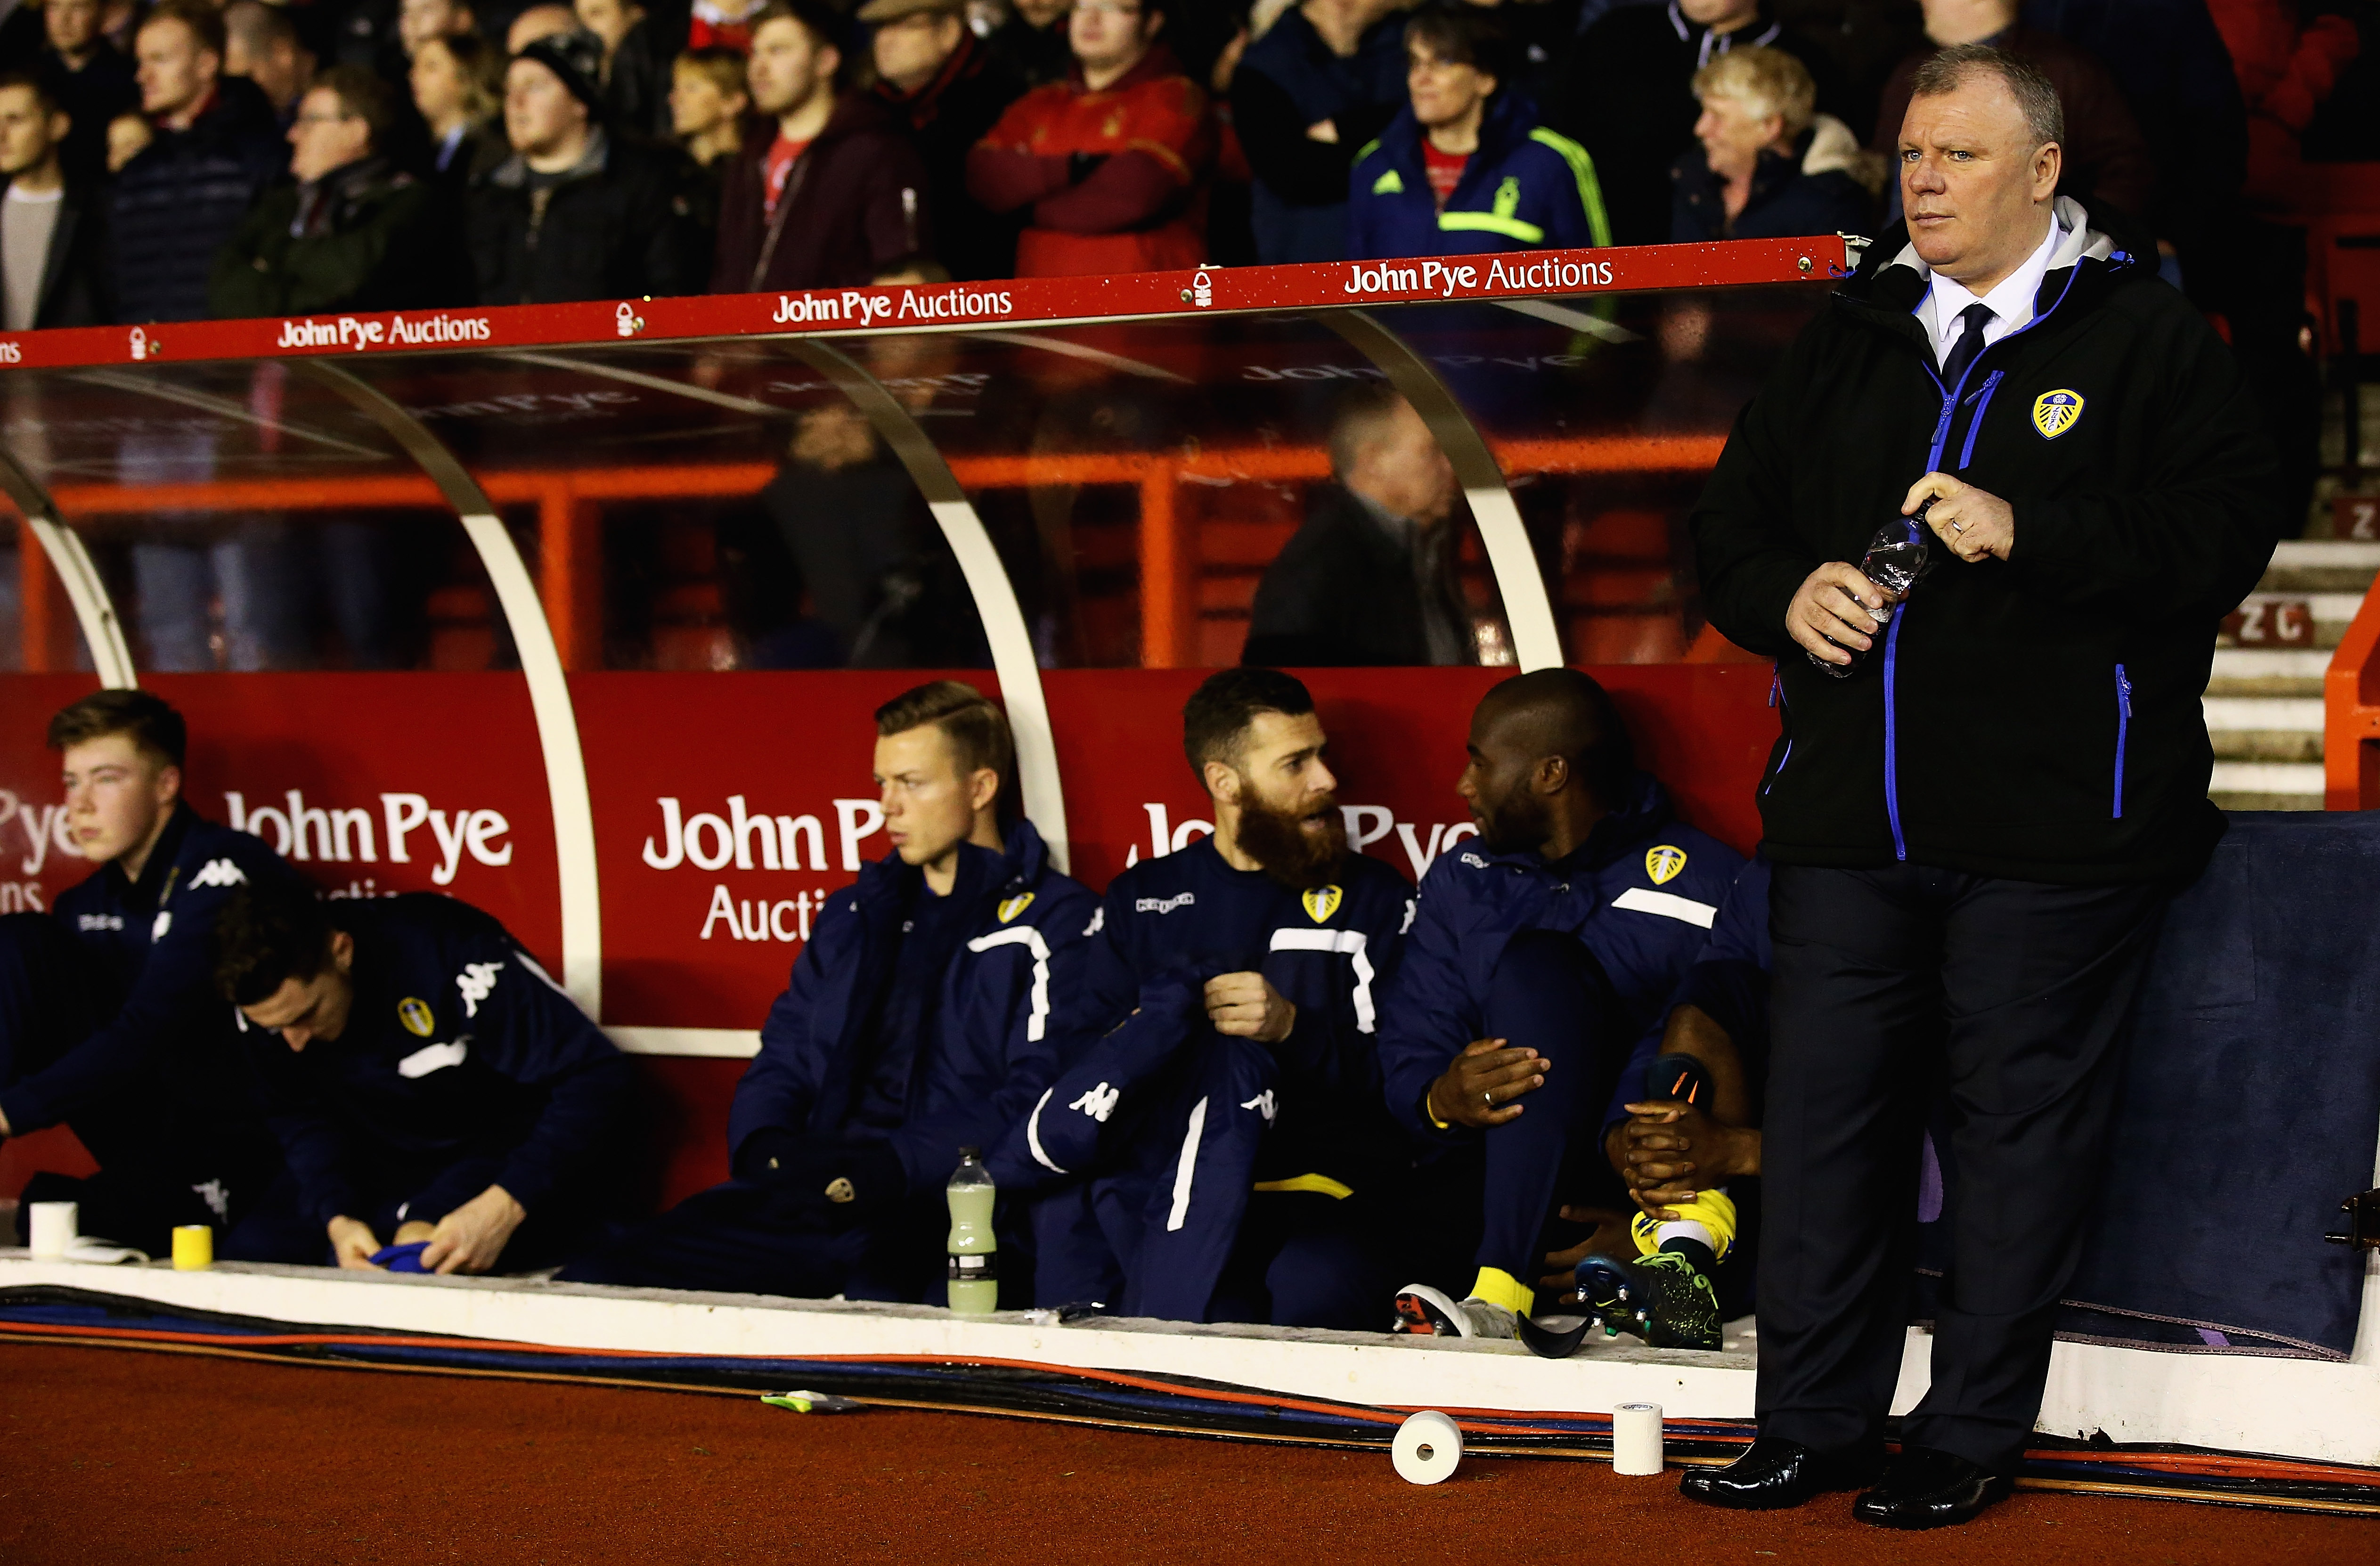 Who knows who'll be on Evans' bench in February?